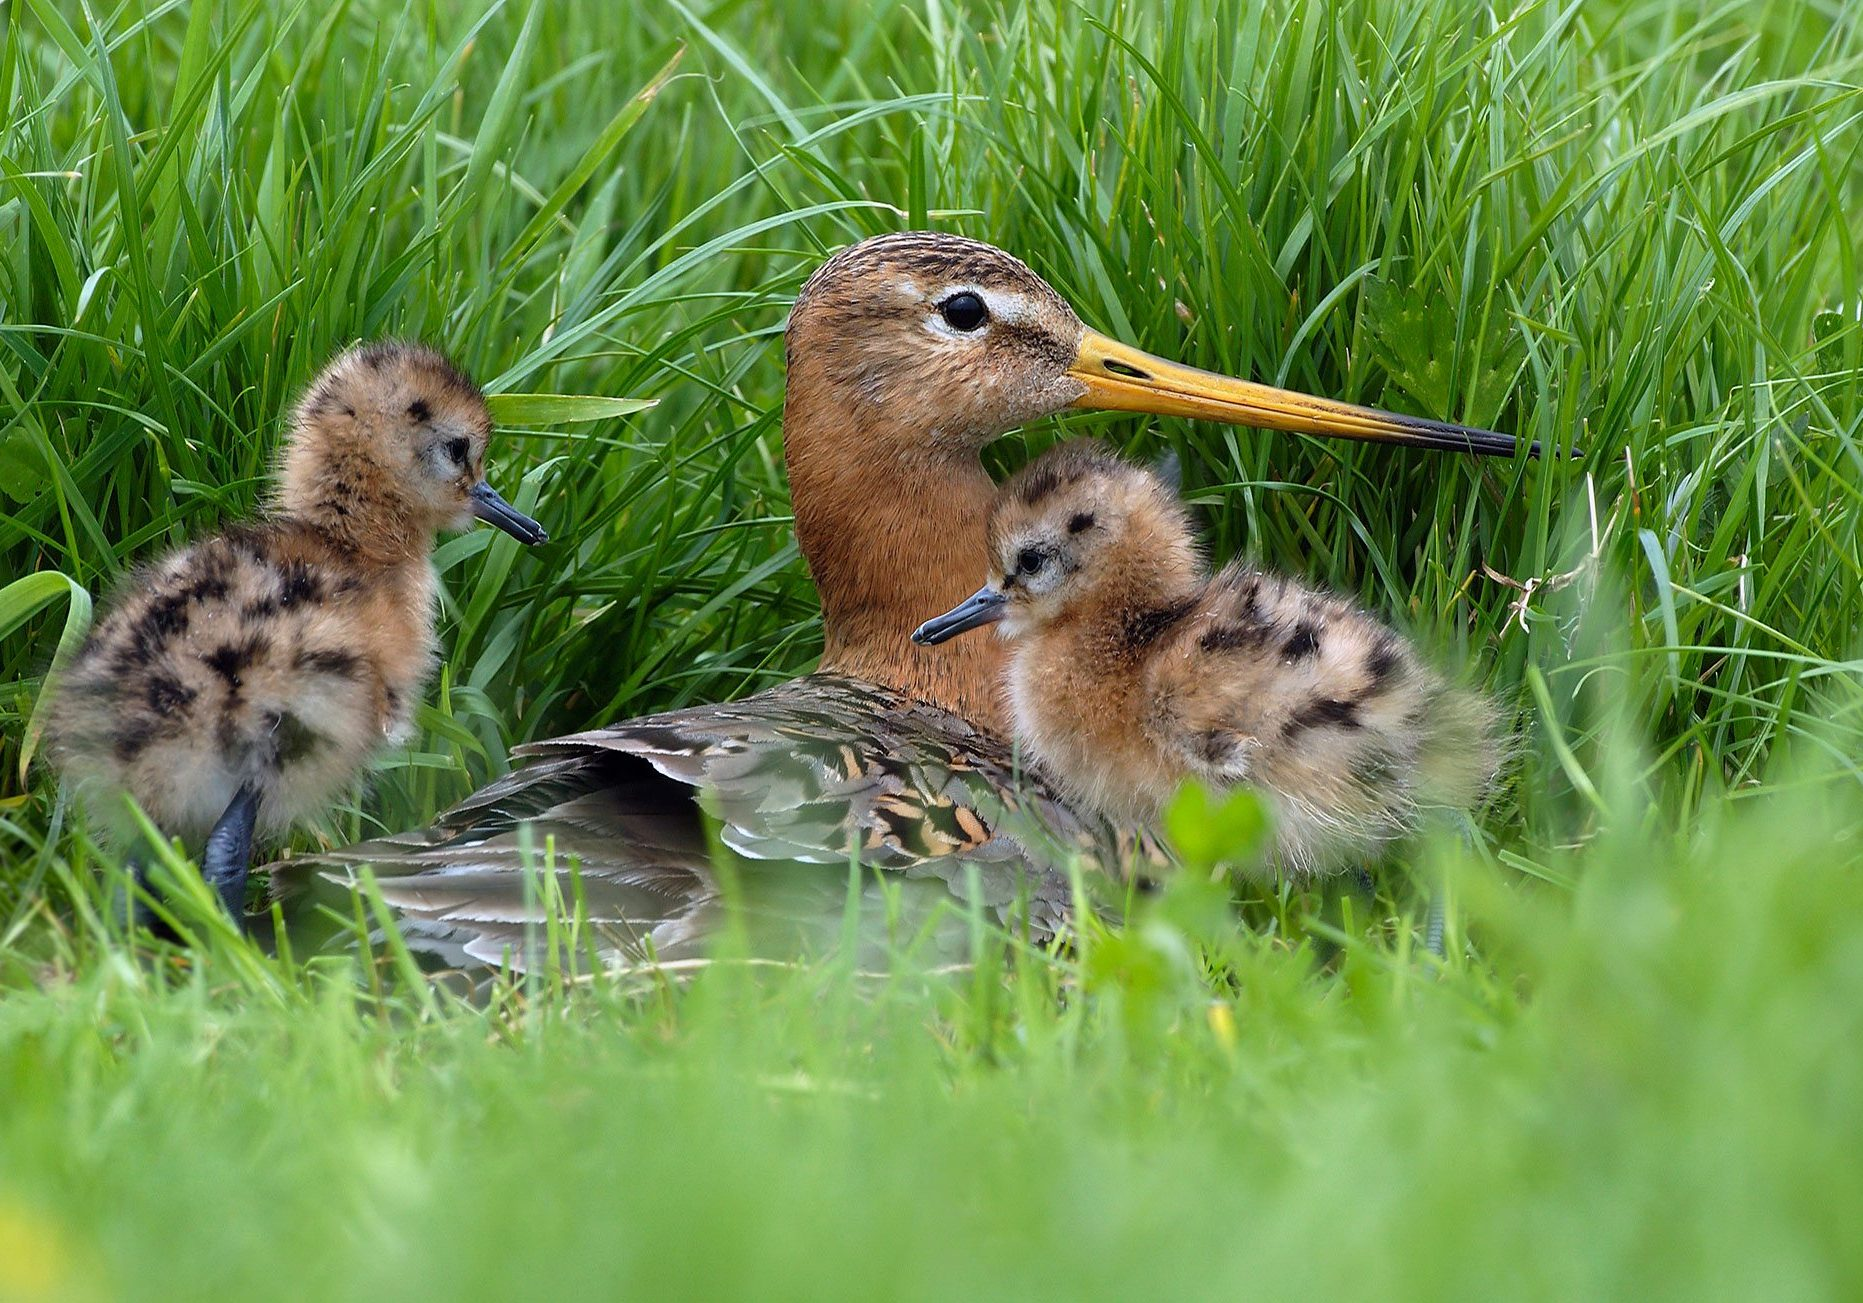 Black-tailed Godwit (Limosa limosa) mother with chicks at nest, Waterland, Netherlands